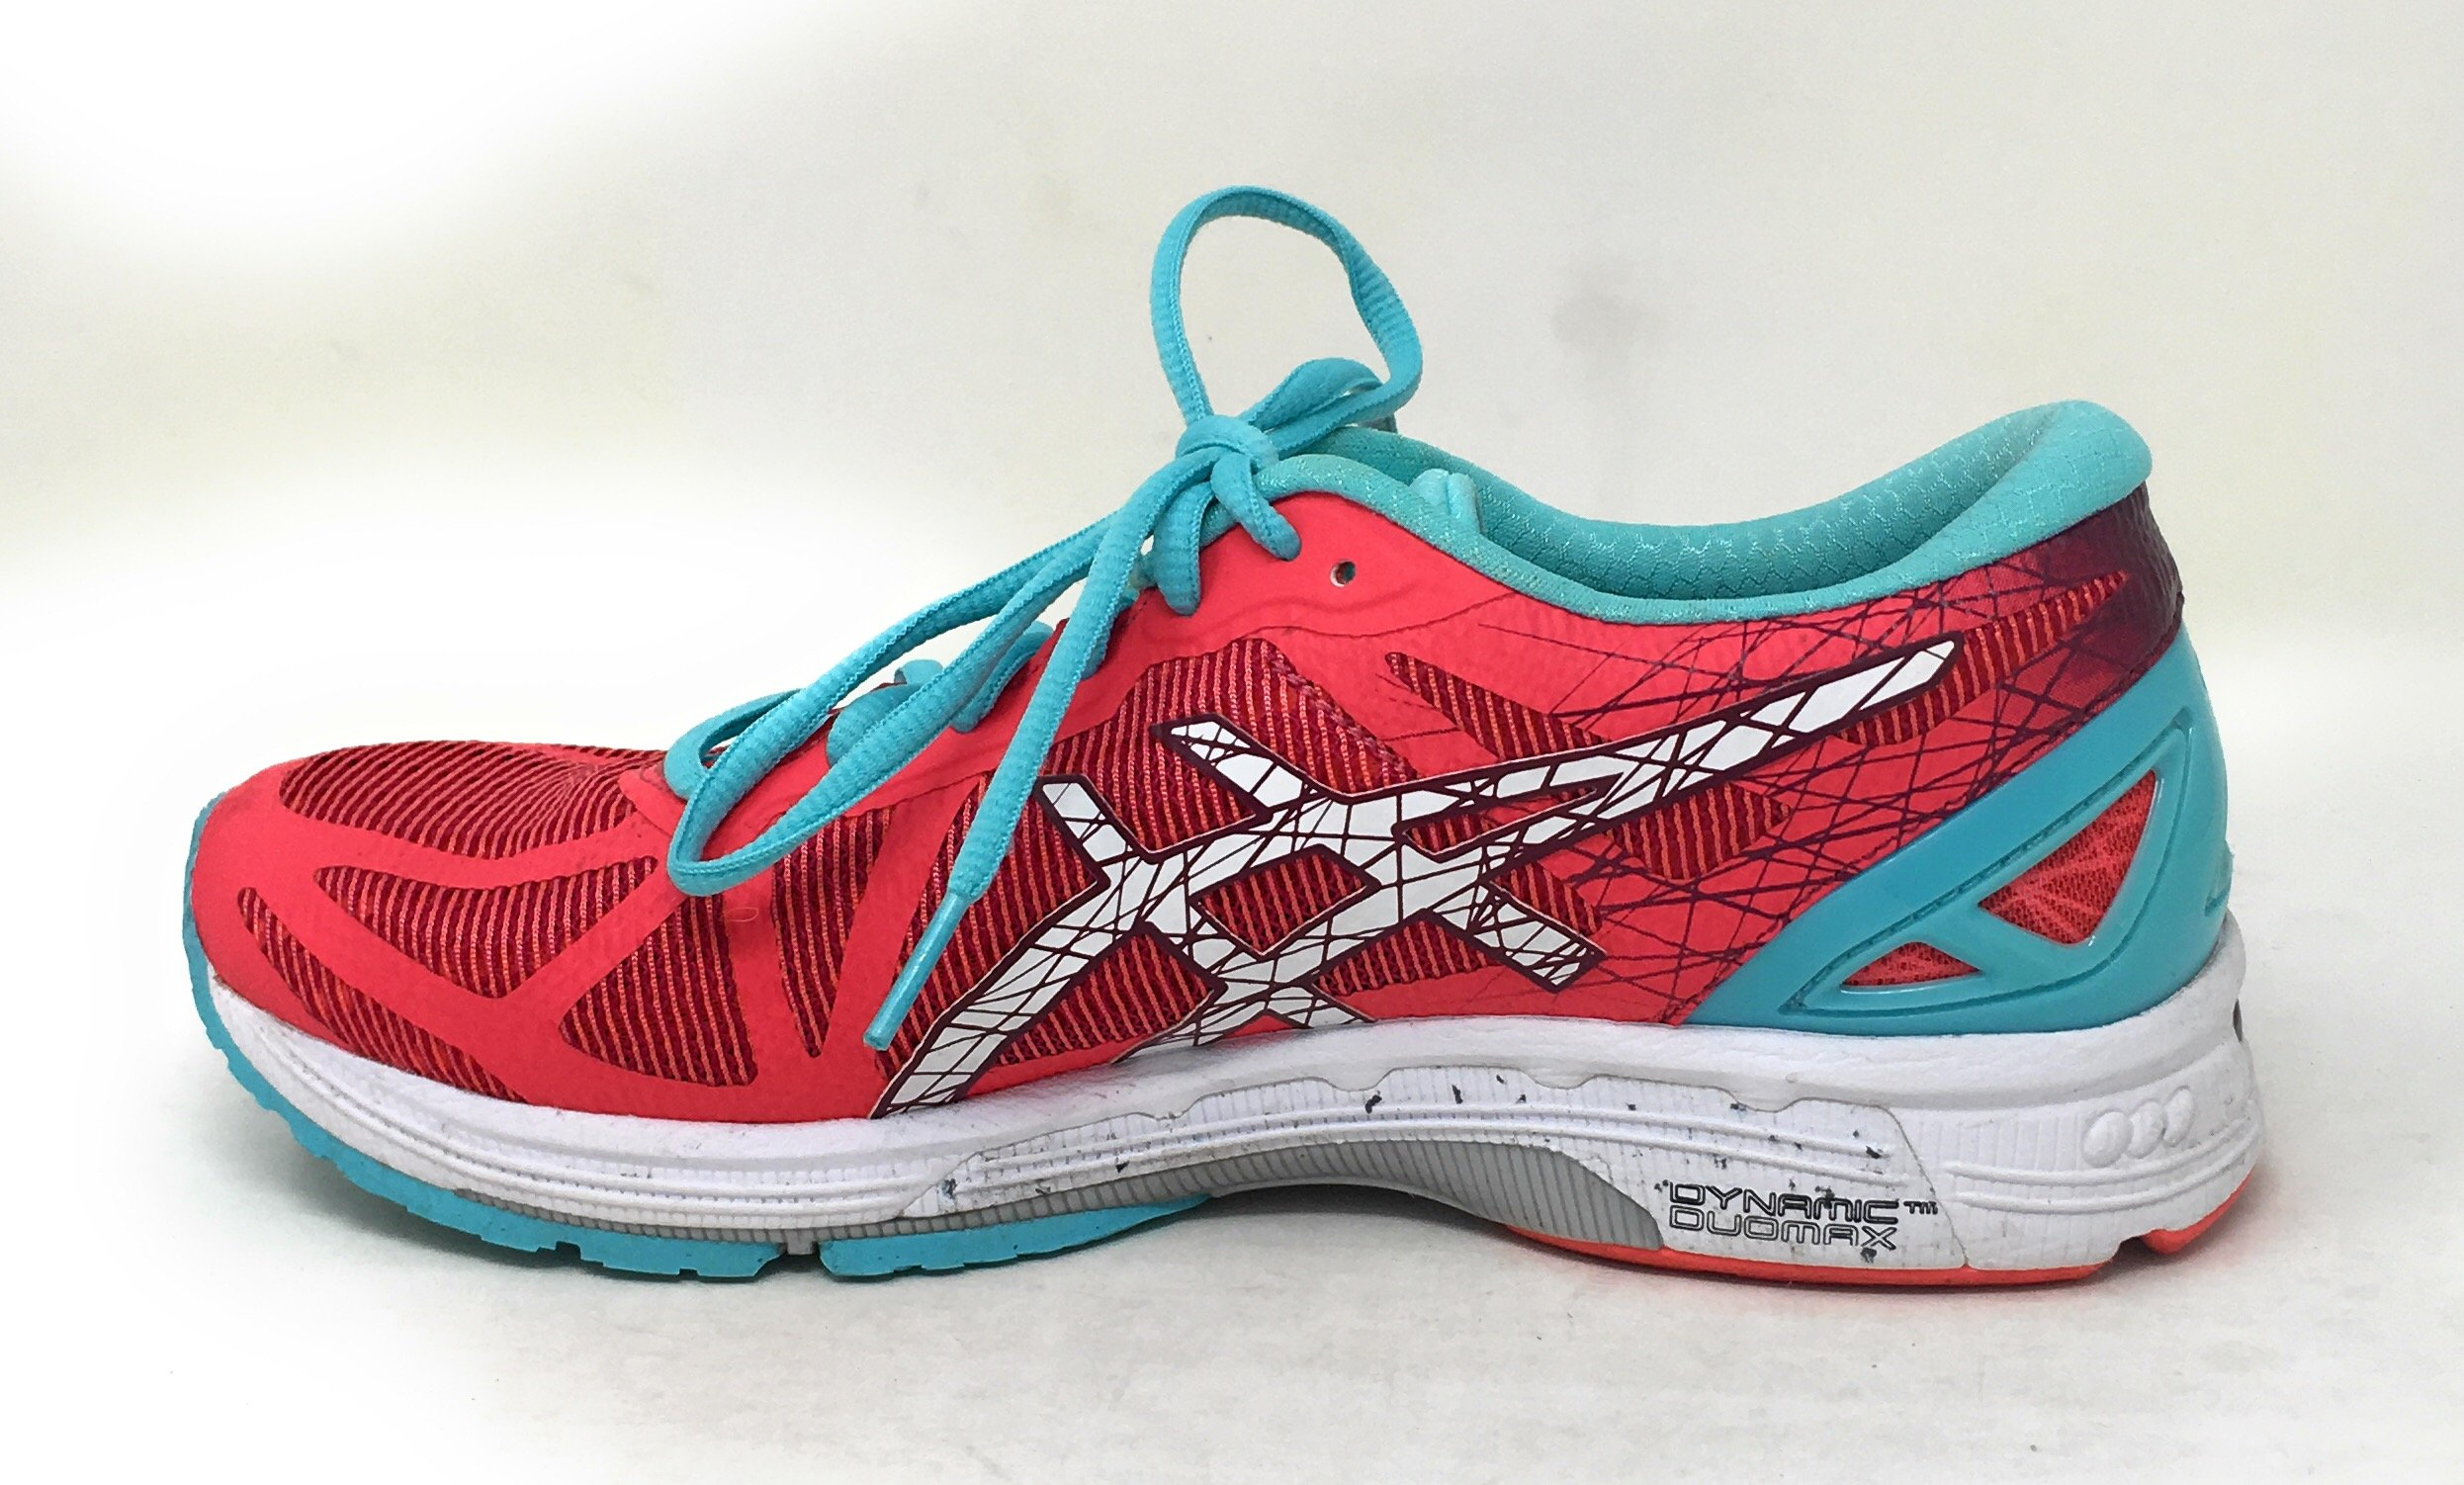 Details about ASICS WOMENS 8 M ASICS GEL DS TRAINER 21 RUNNING SHOES DIVA PINK WHITE TURQUOISE